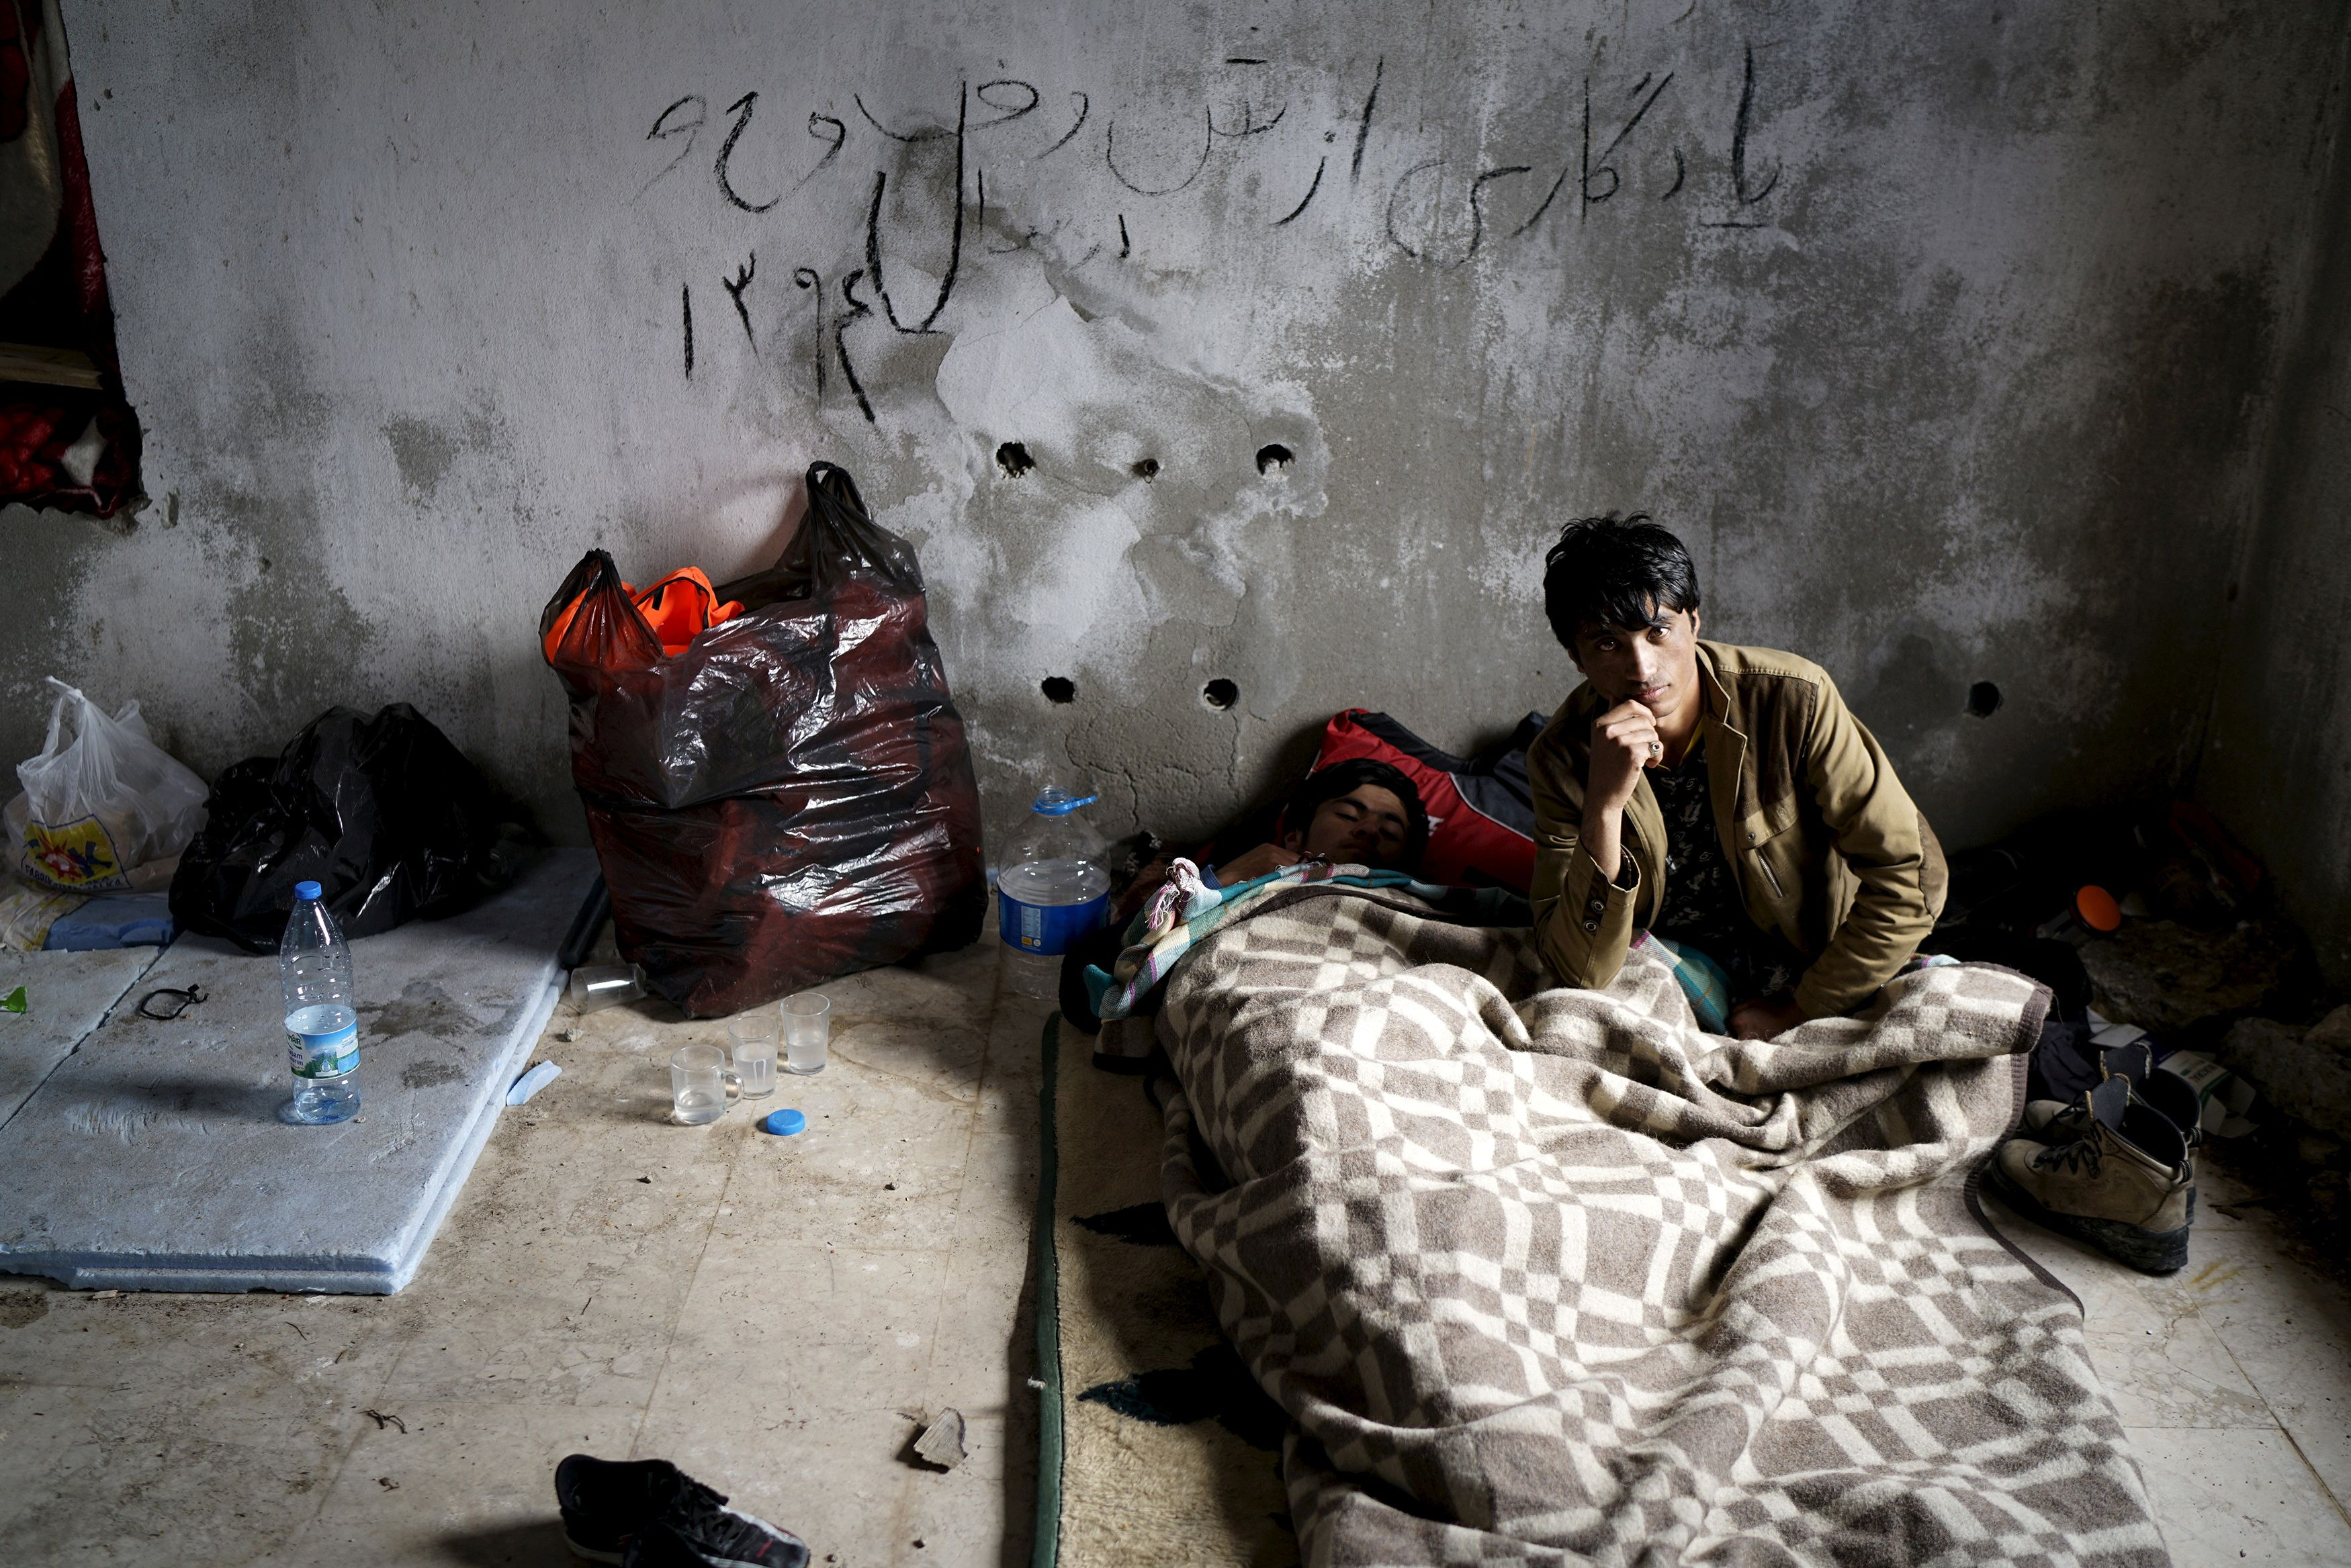 Afghan refugees rest in an old abandoned beach house as they wait to board a dinghy sailing off for the Greek island of Chios, while they try to travel from the western Turkish coastal town of Cesme, in Izmir province, Turkey, March 6, 2016. REUTERS/Umit Bektas/File Photo